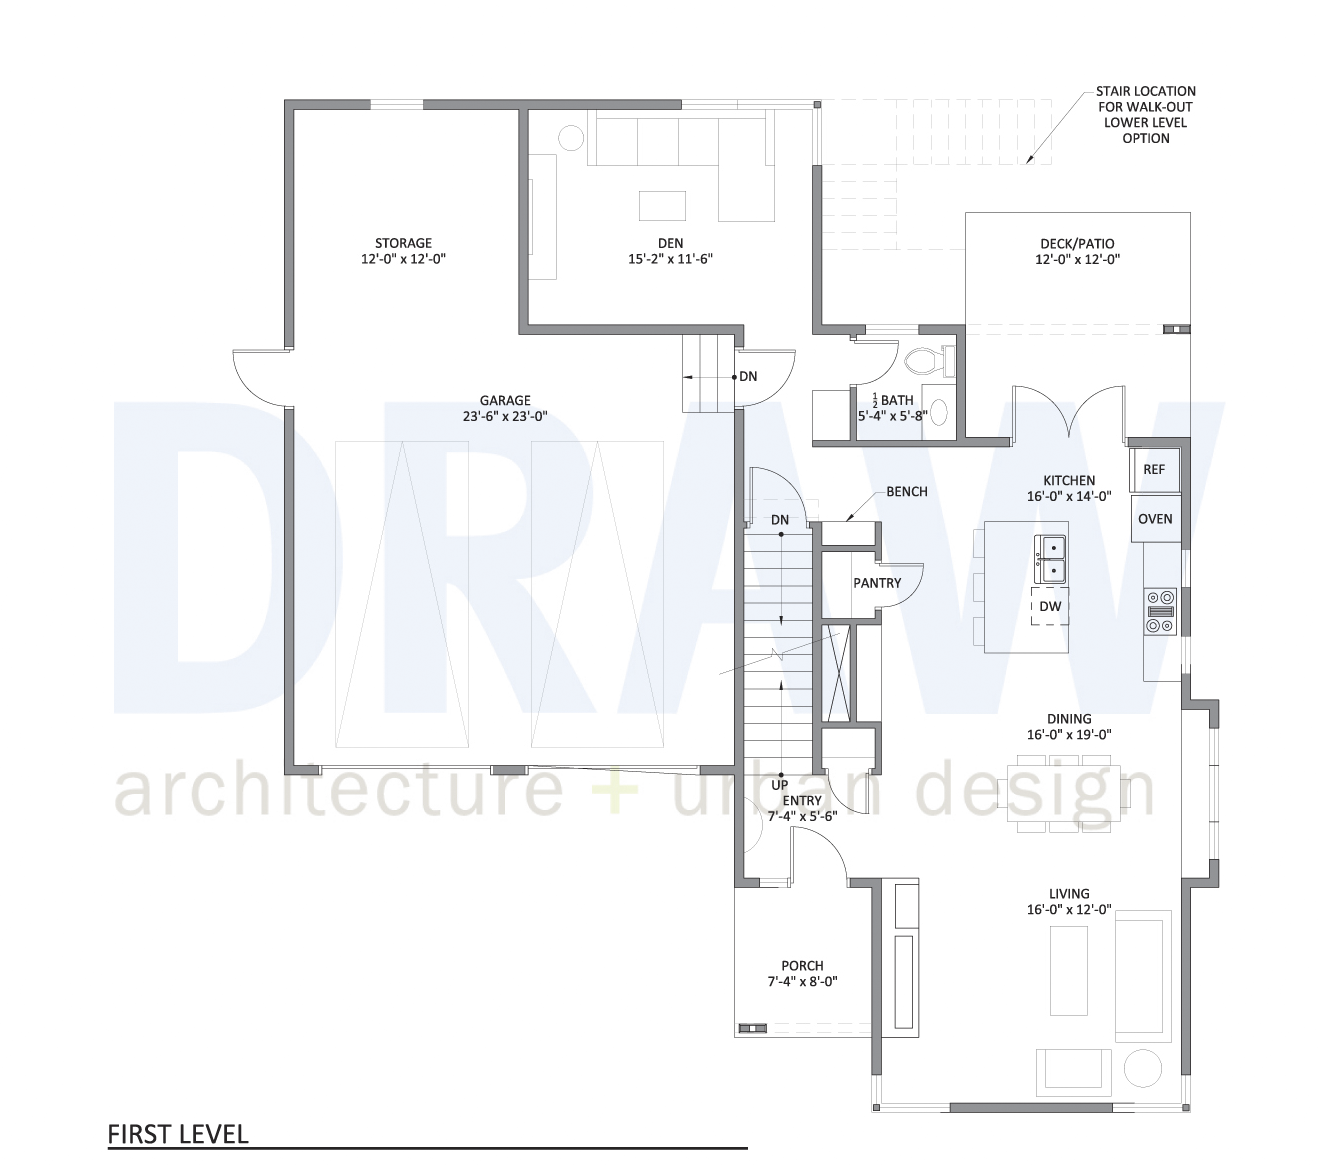 Urban North - House Plan 1 first level floor plan